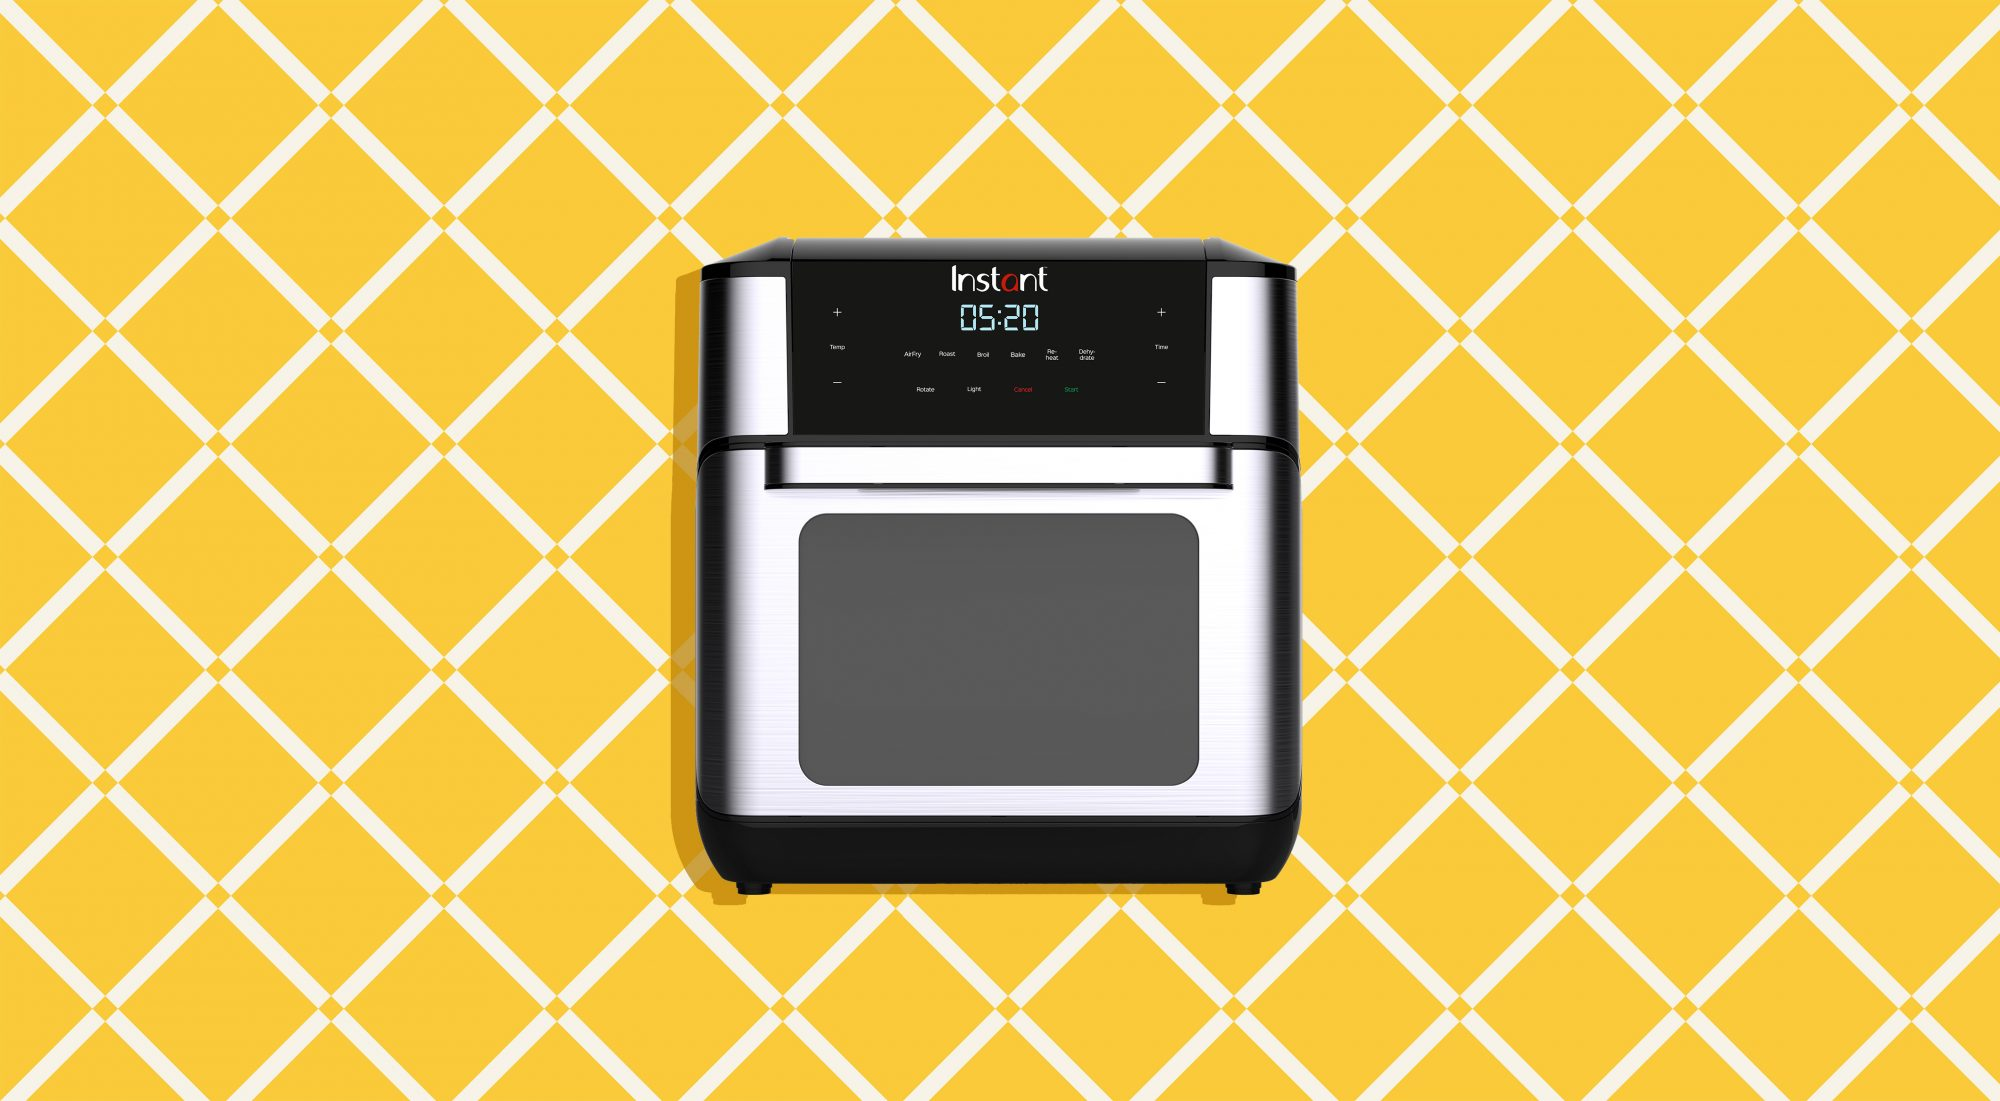 Instant Pot Just Released An Air Fryer The Instant Vortex Plus 7